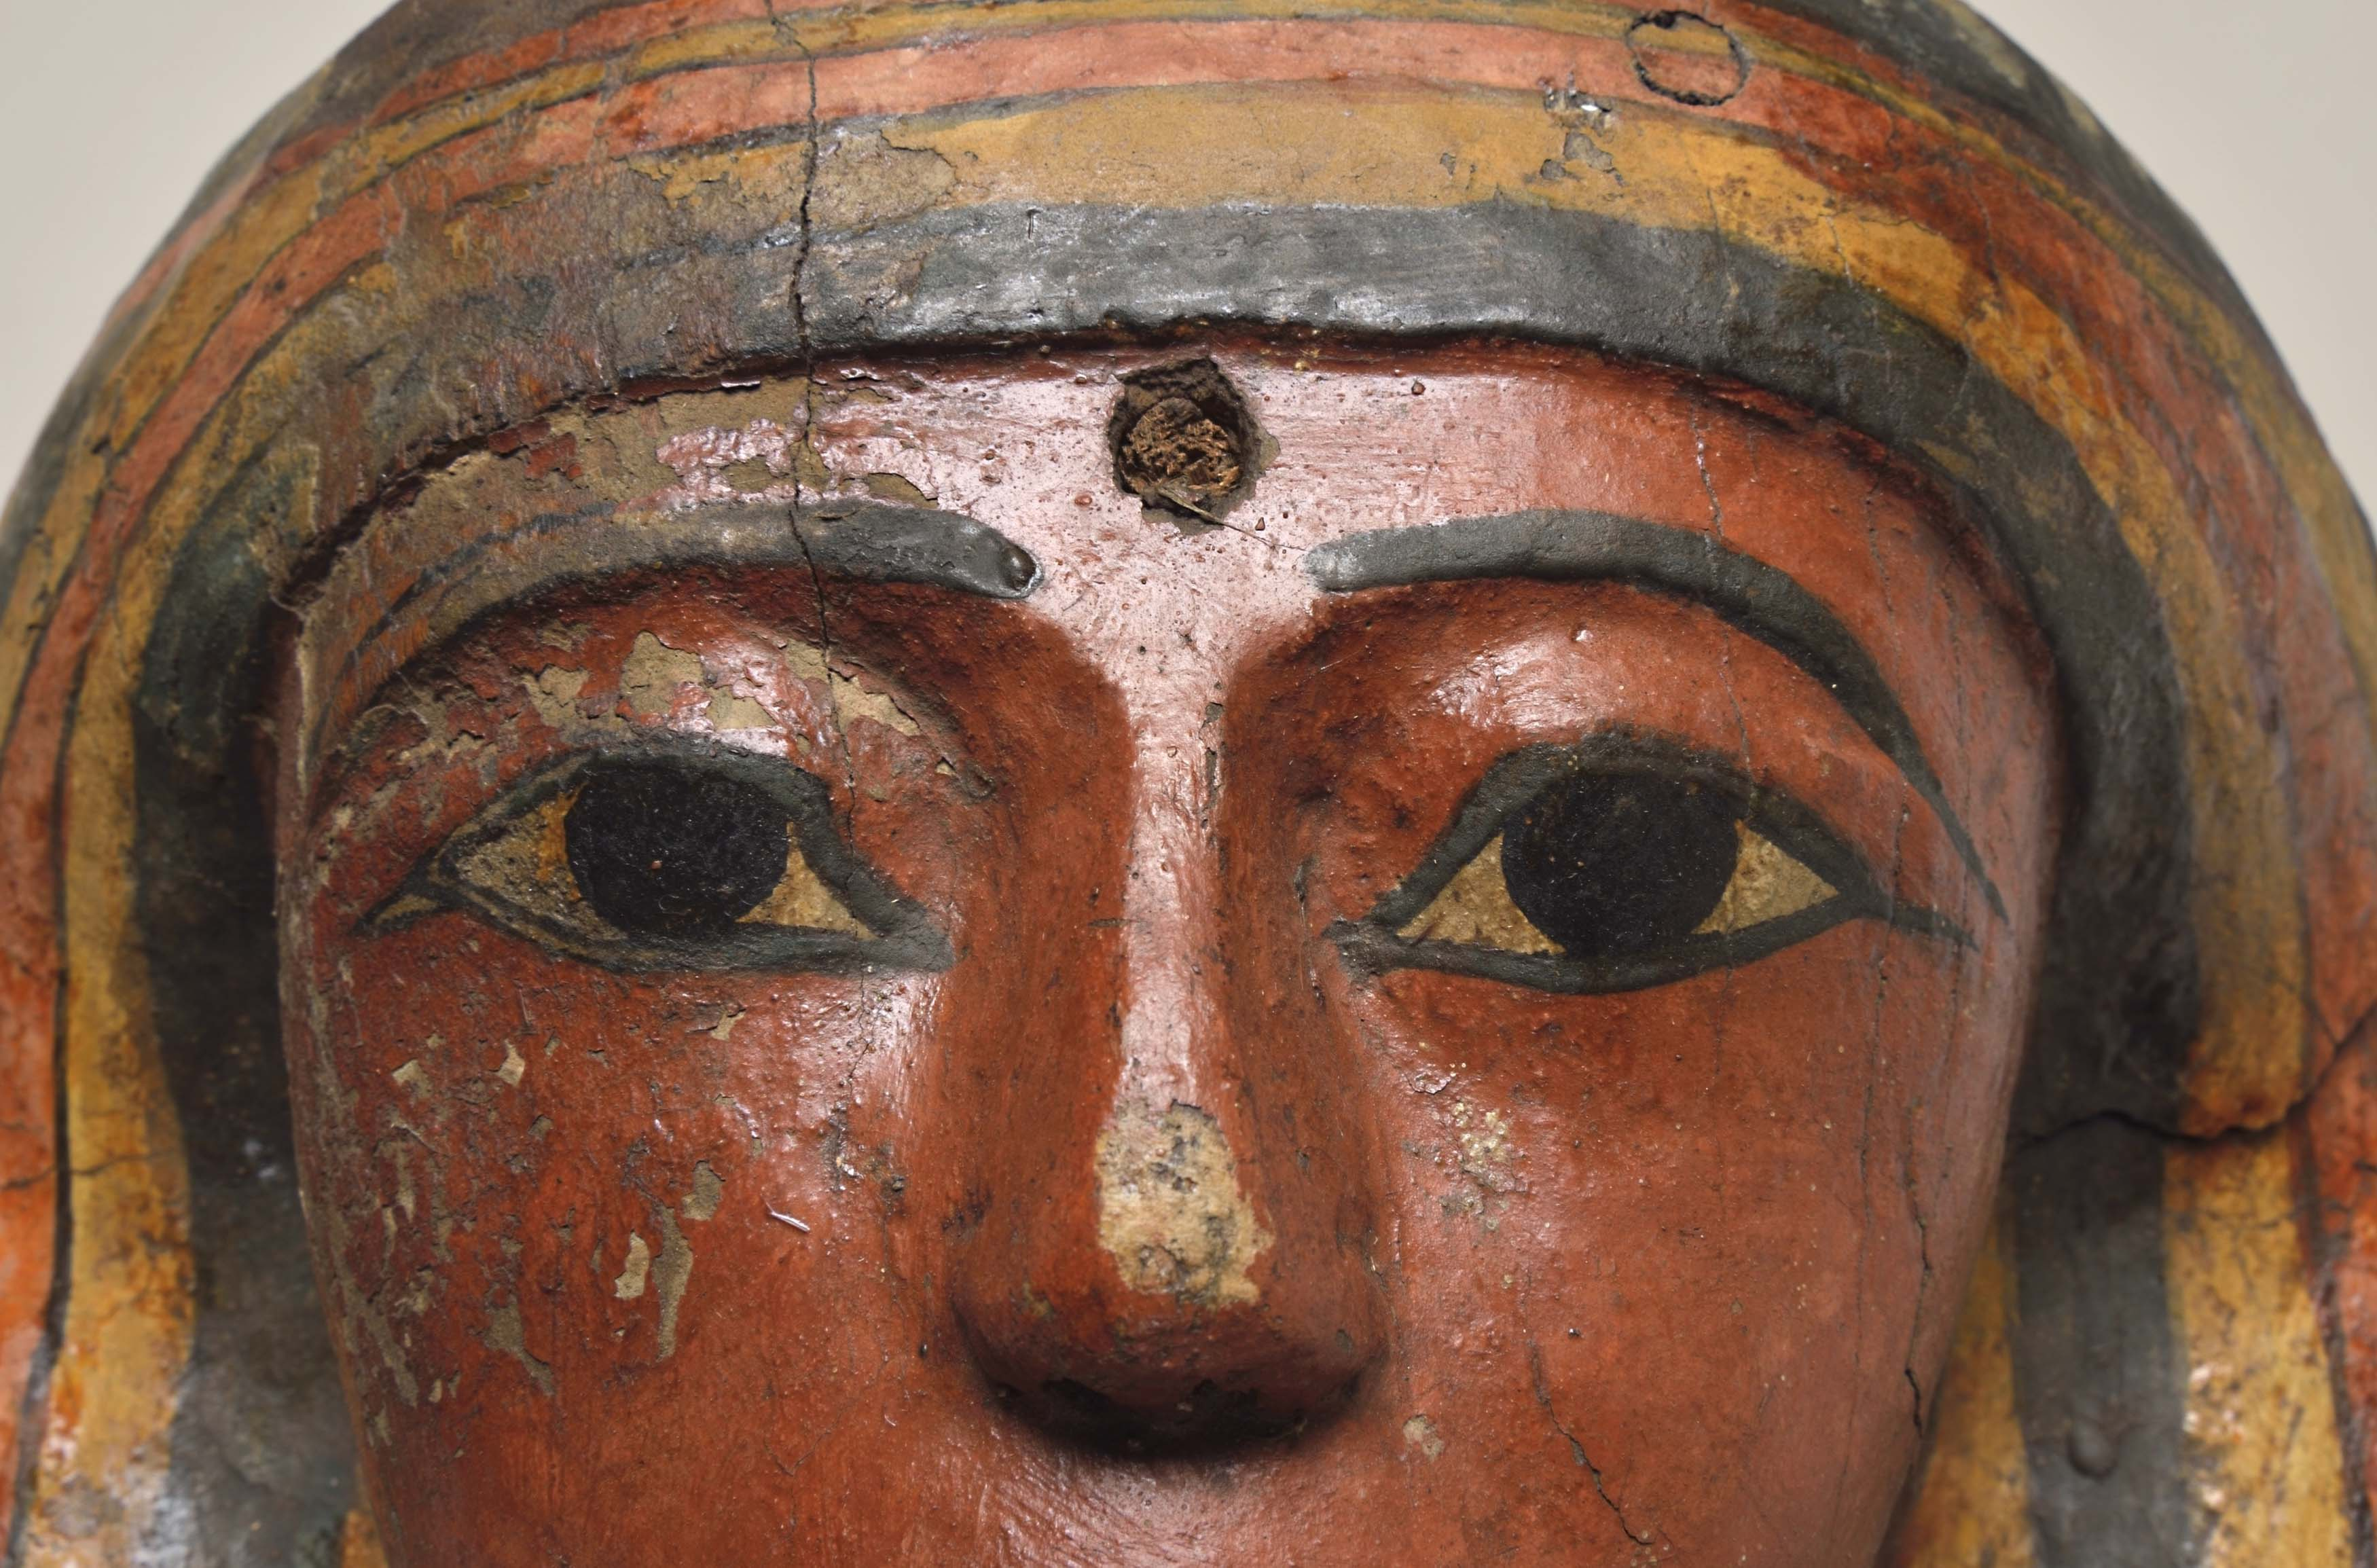 a close up of the eyes in the mask of the coffin of an Egyptian mummy